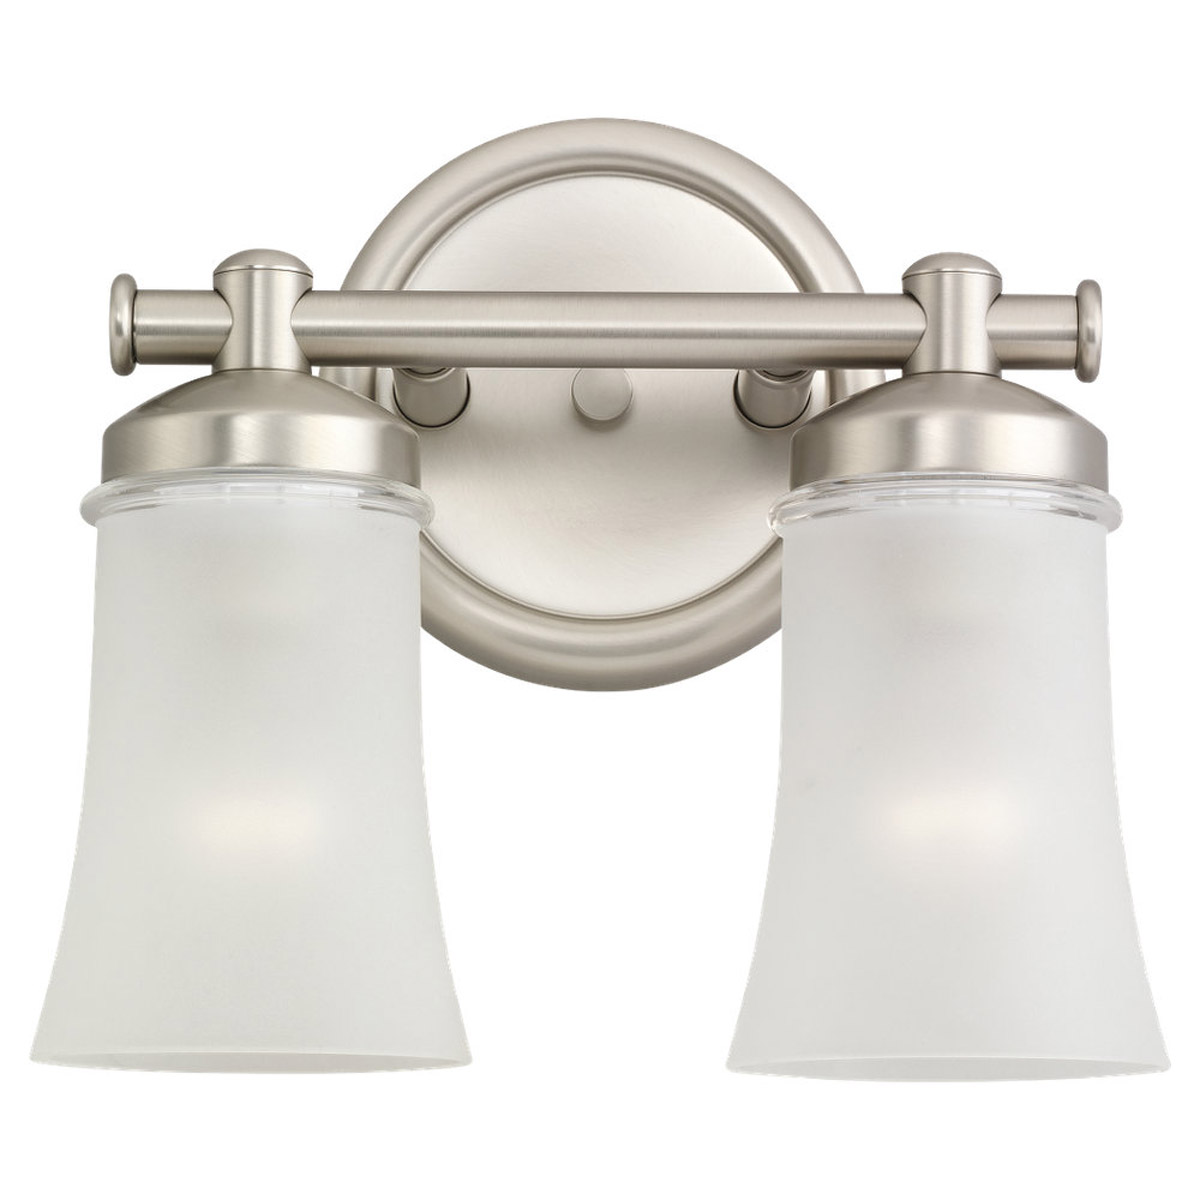 Sea Gull Lighting Newport 2 Light Bath Vanity in Antique Brushed Nickel 44483-965